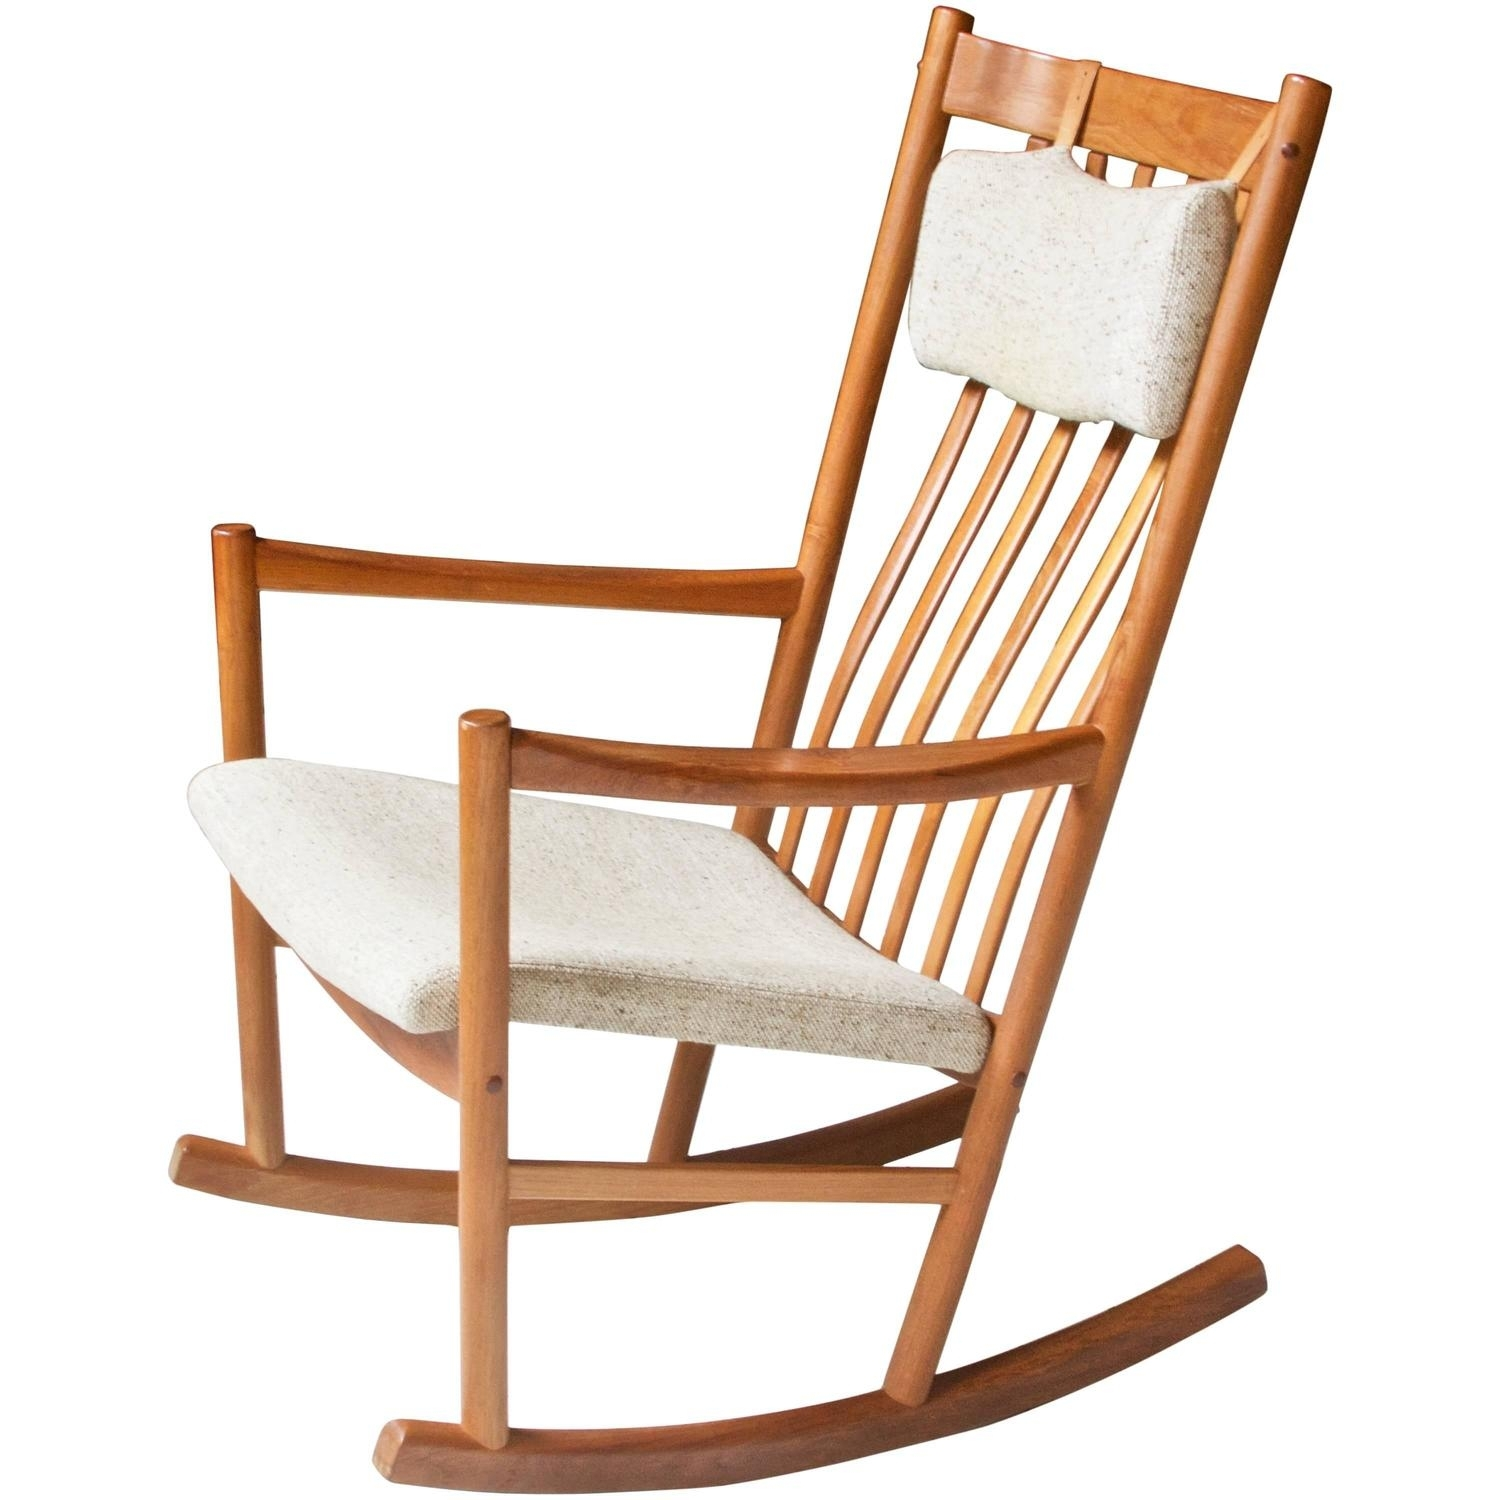 Inspiration about Teak Rocking Chair With Cord Strung Seat And Back For Sale At 1Stdibs For Rocking Chairs (#13 of 15)